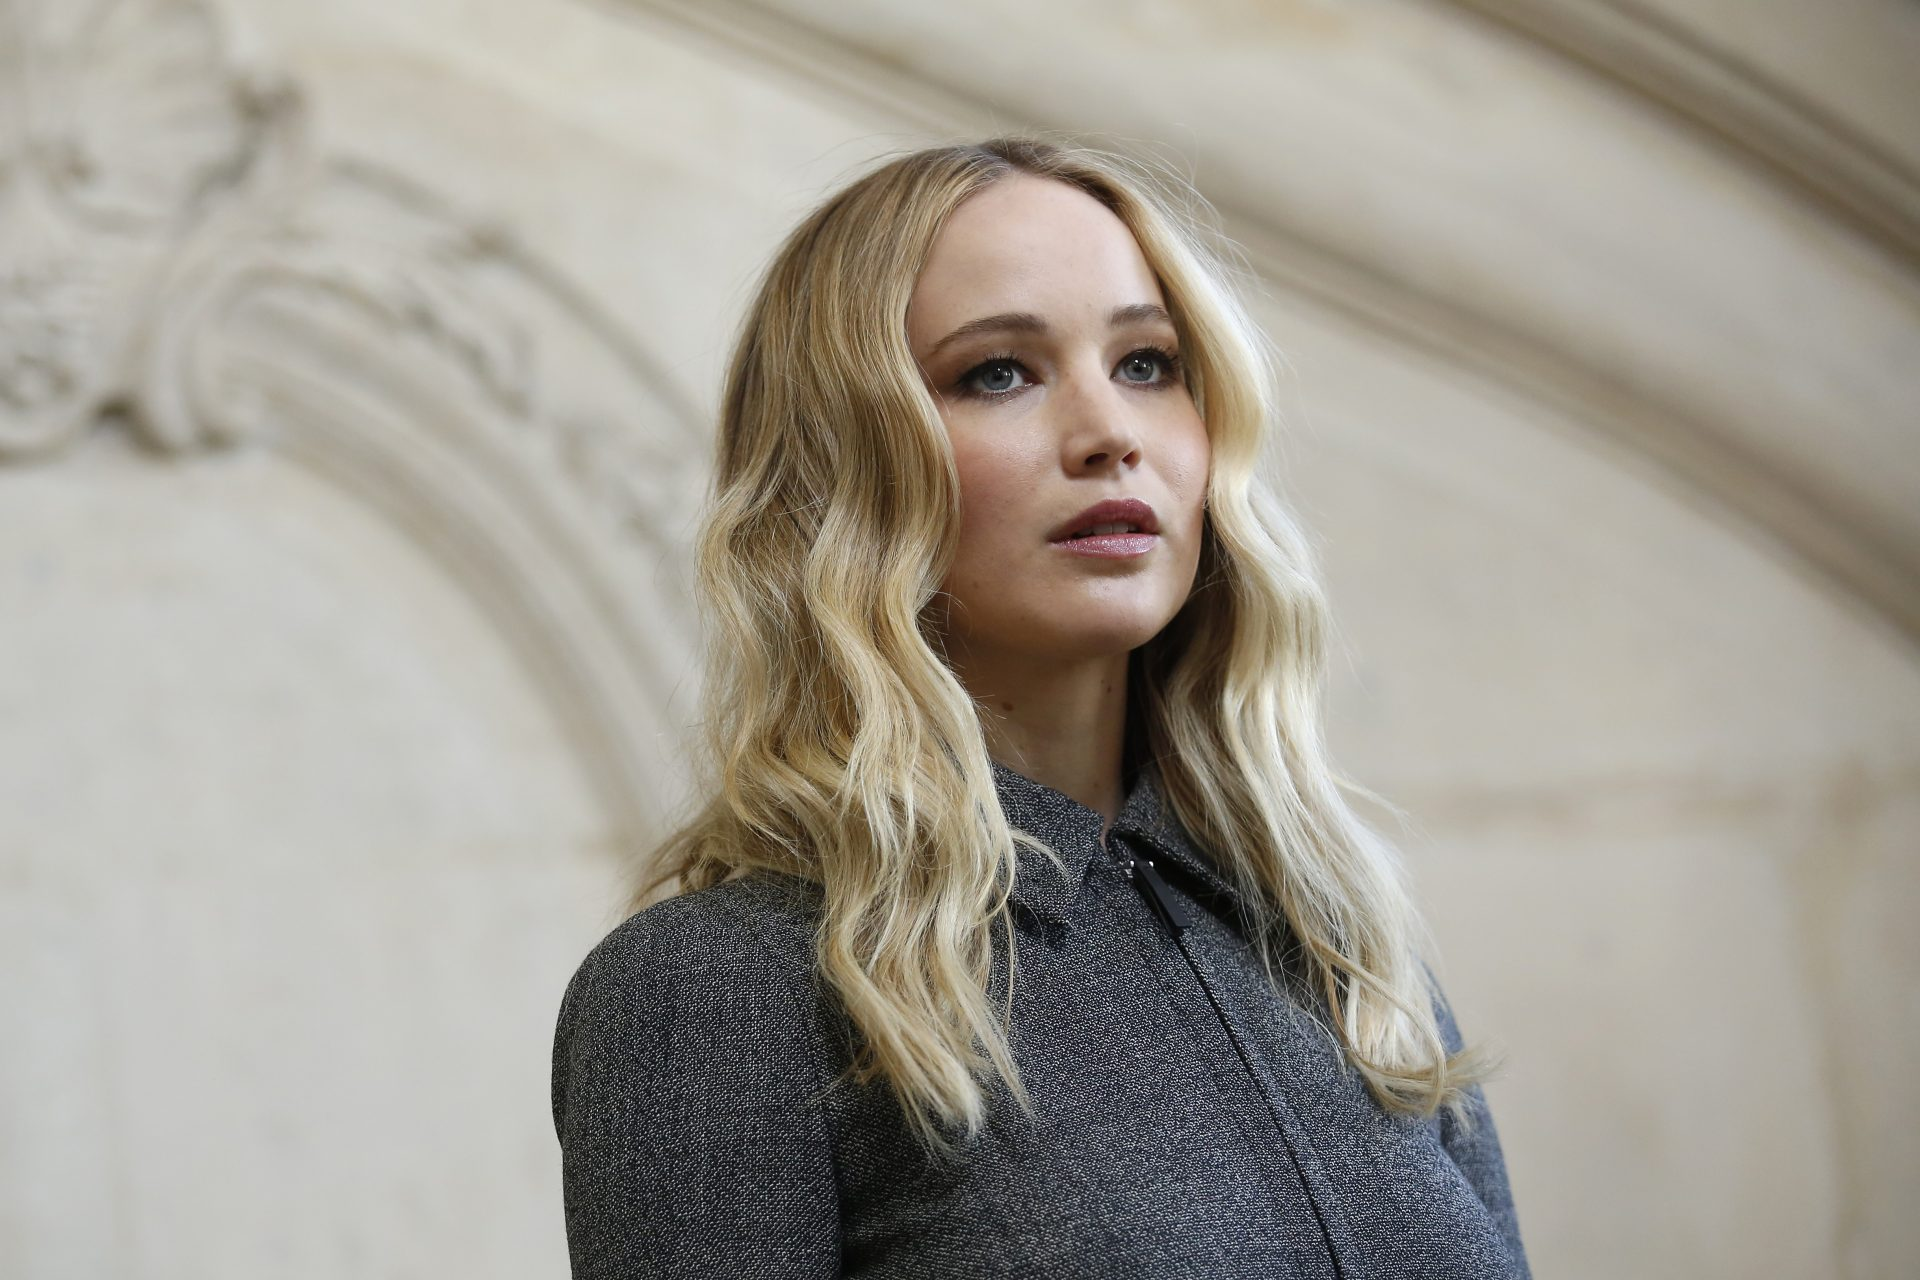 What's Jennifer Lawrence doing now?